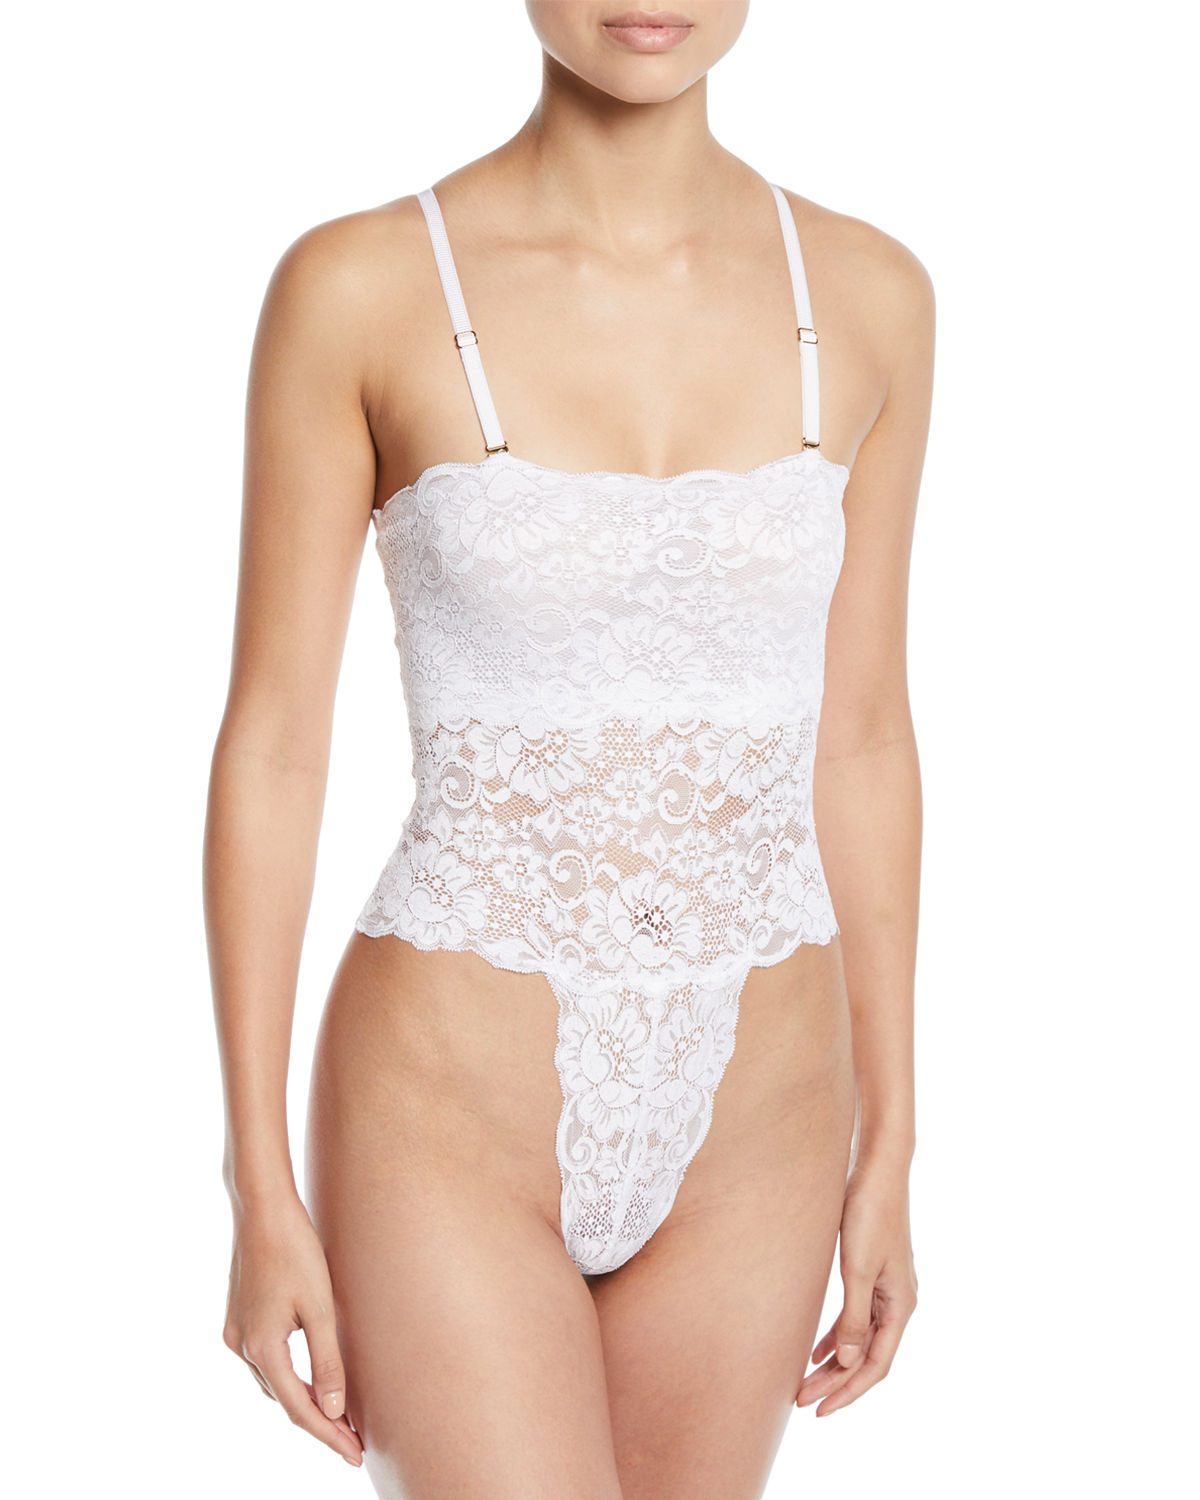 Spinster Reversible Lace Bodysuit